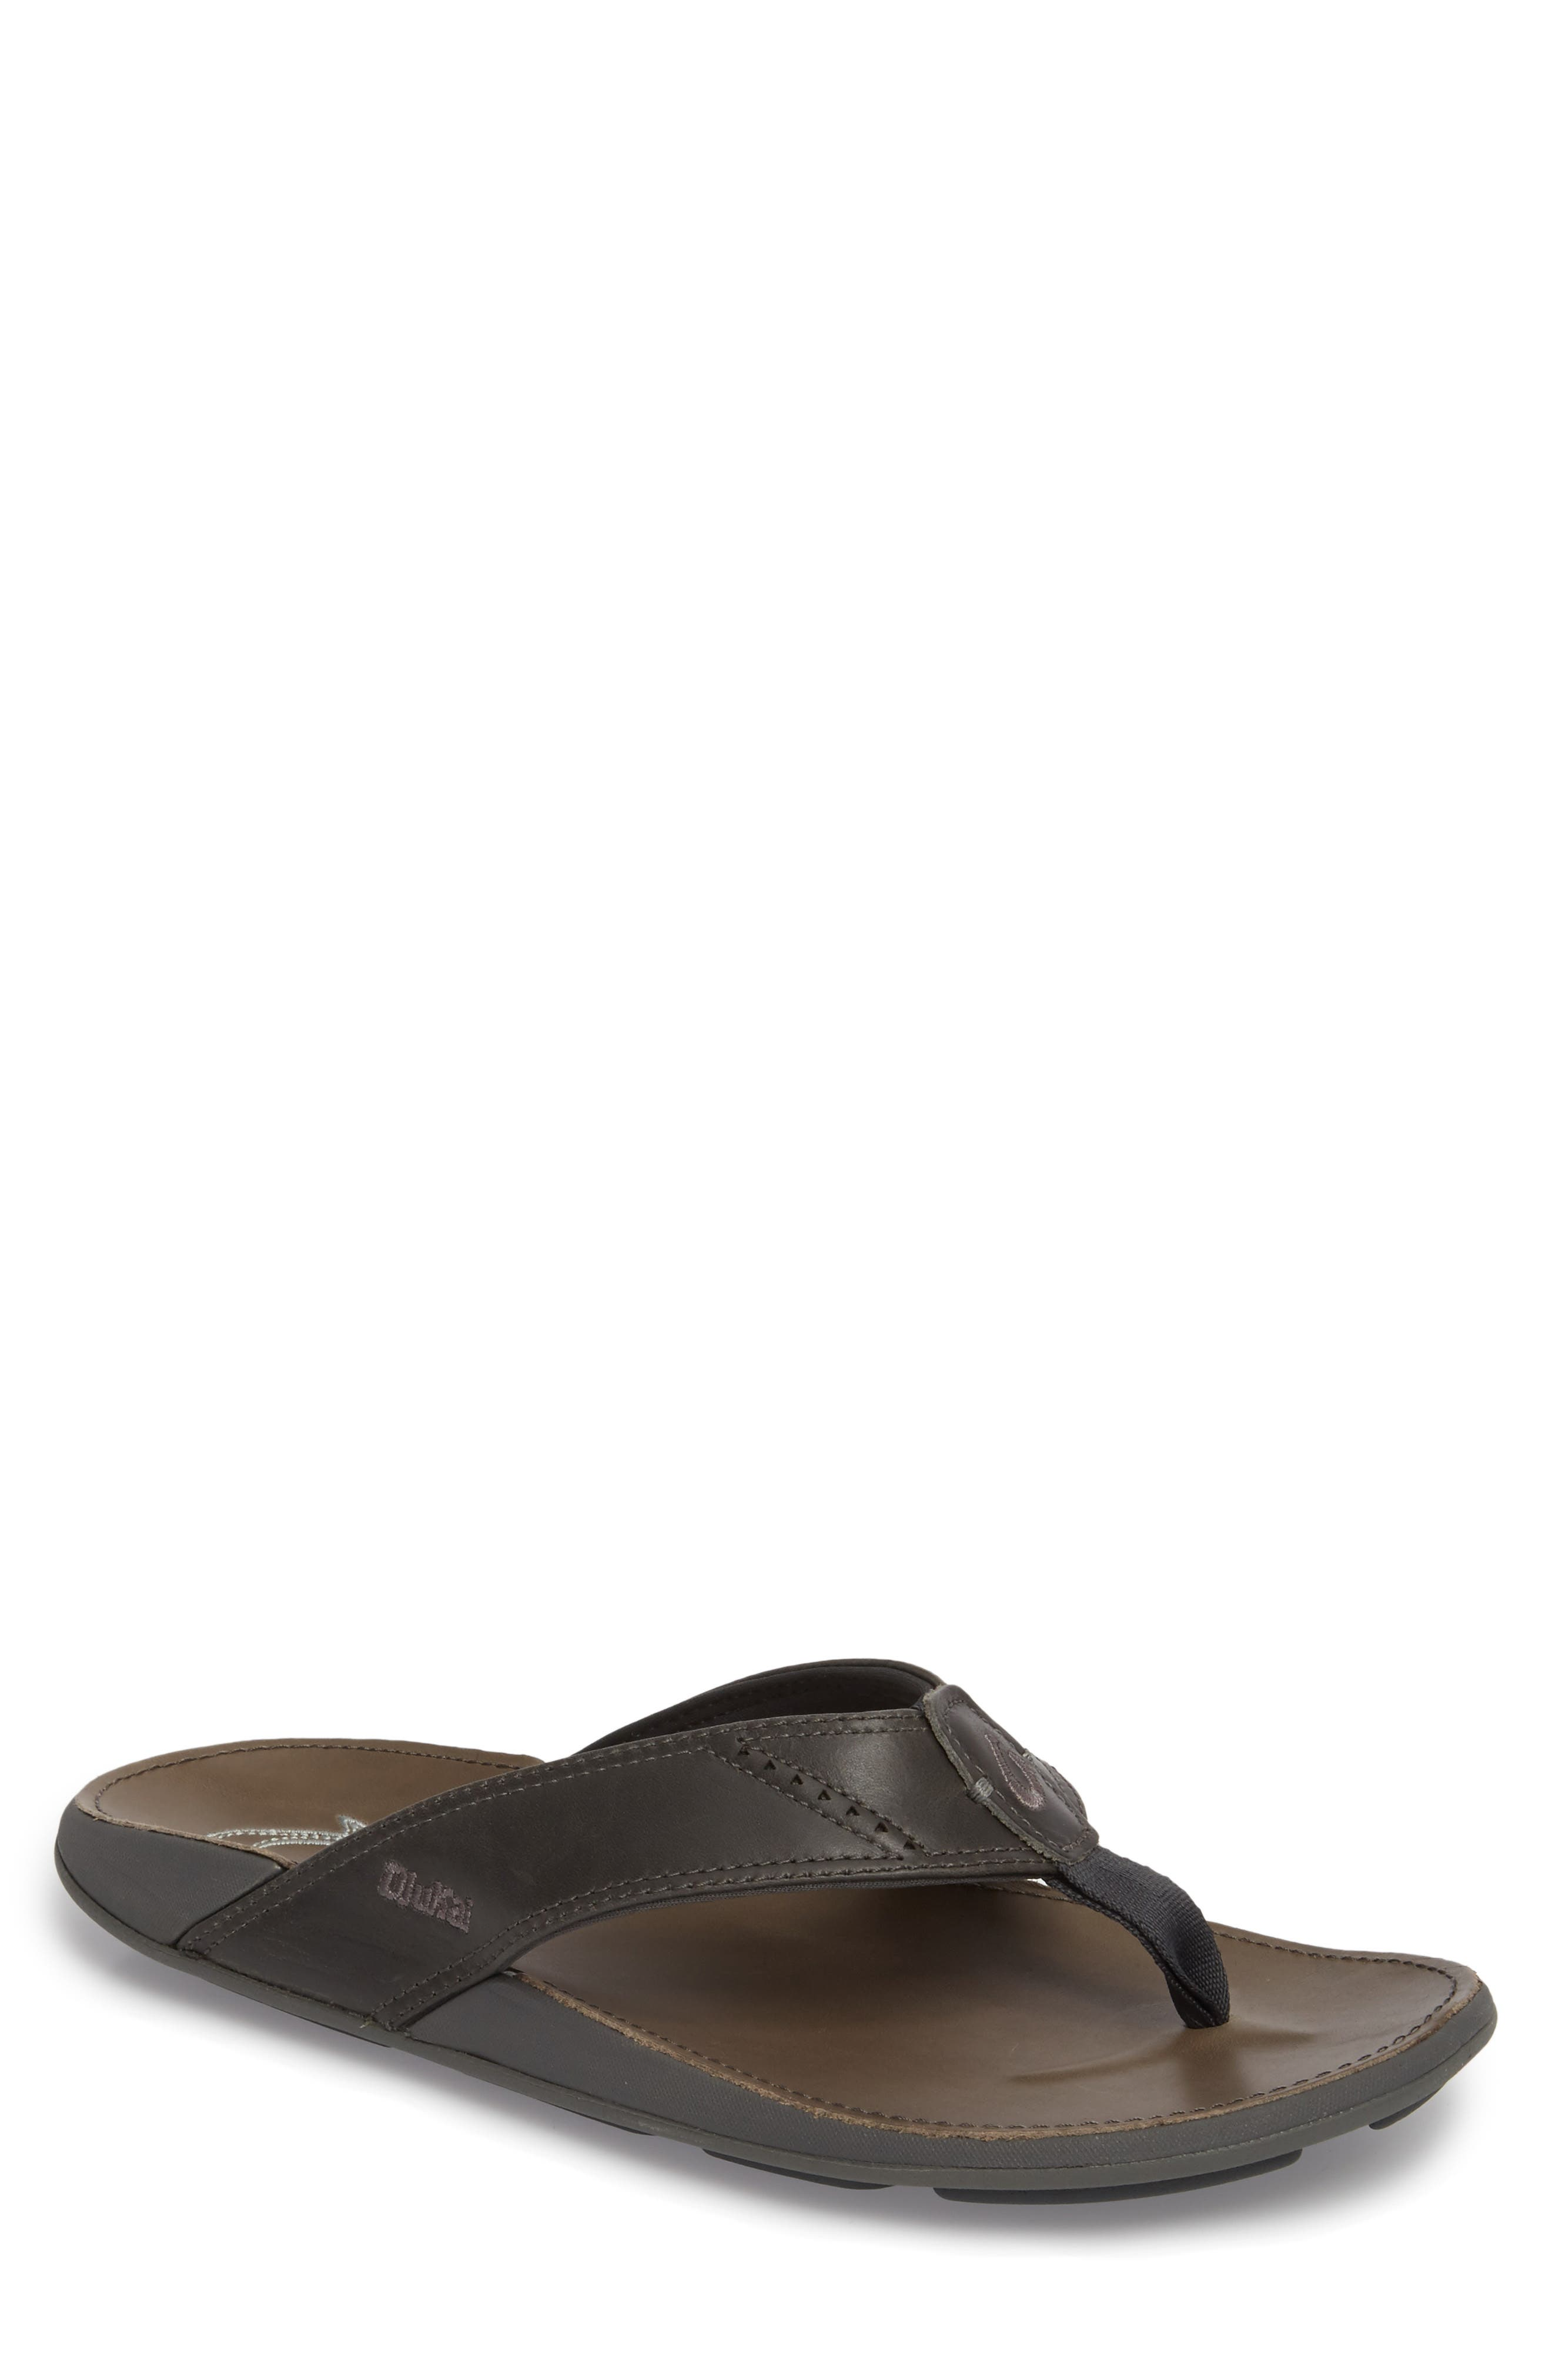 'Nui' Leather Flip Flop,                         Main,                         color, DARK SHADOW/ CHARCOAL LEATHER